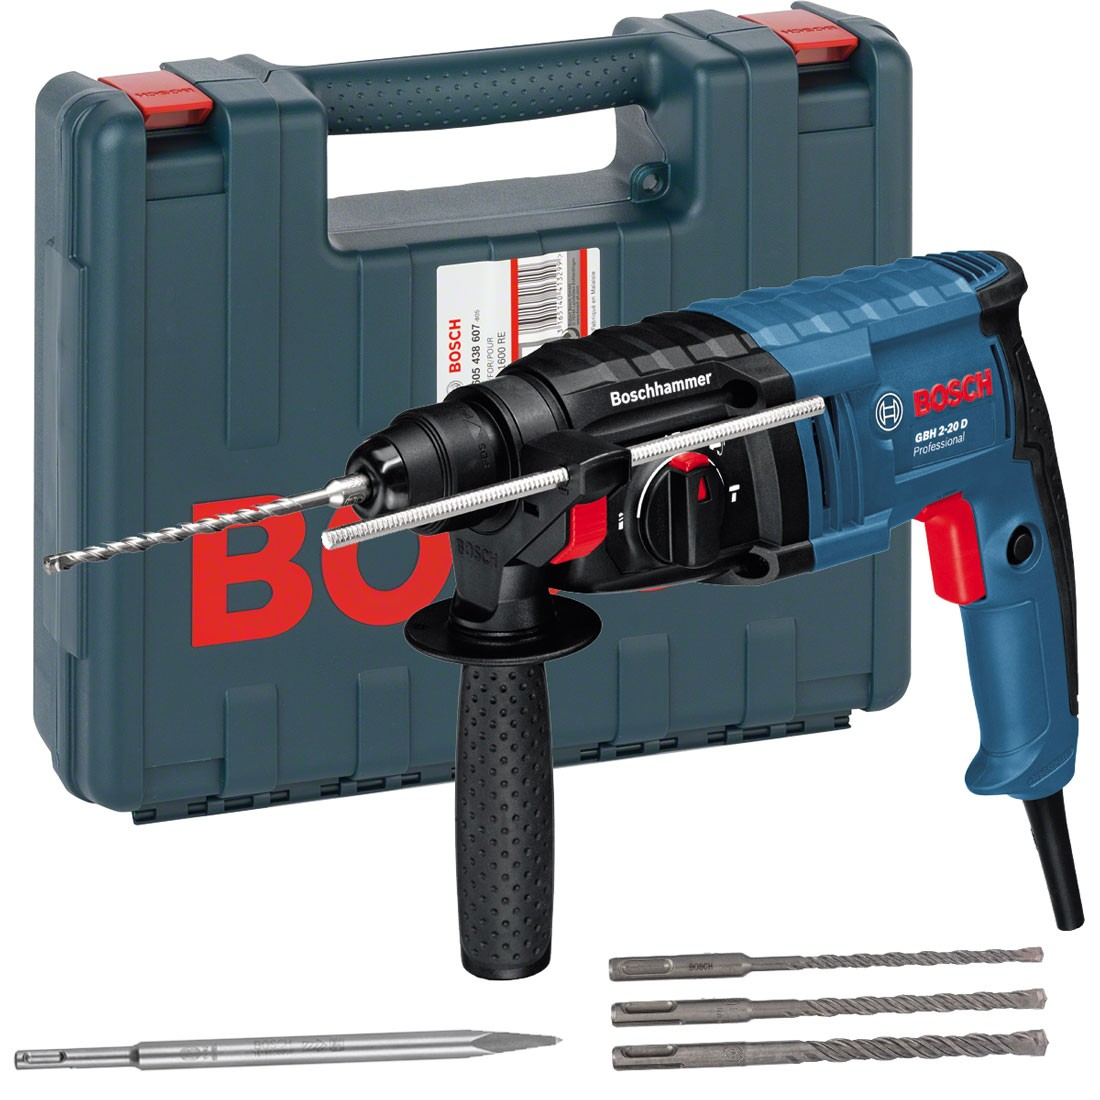 bosch gbh 2 20 d sds plus rotary hammer drill inc 3x. Black Bedroom Furniture Sets. Home Design Ideas